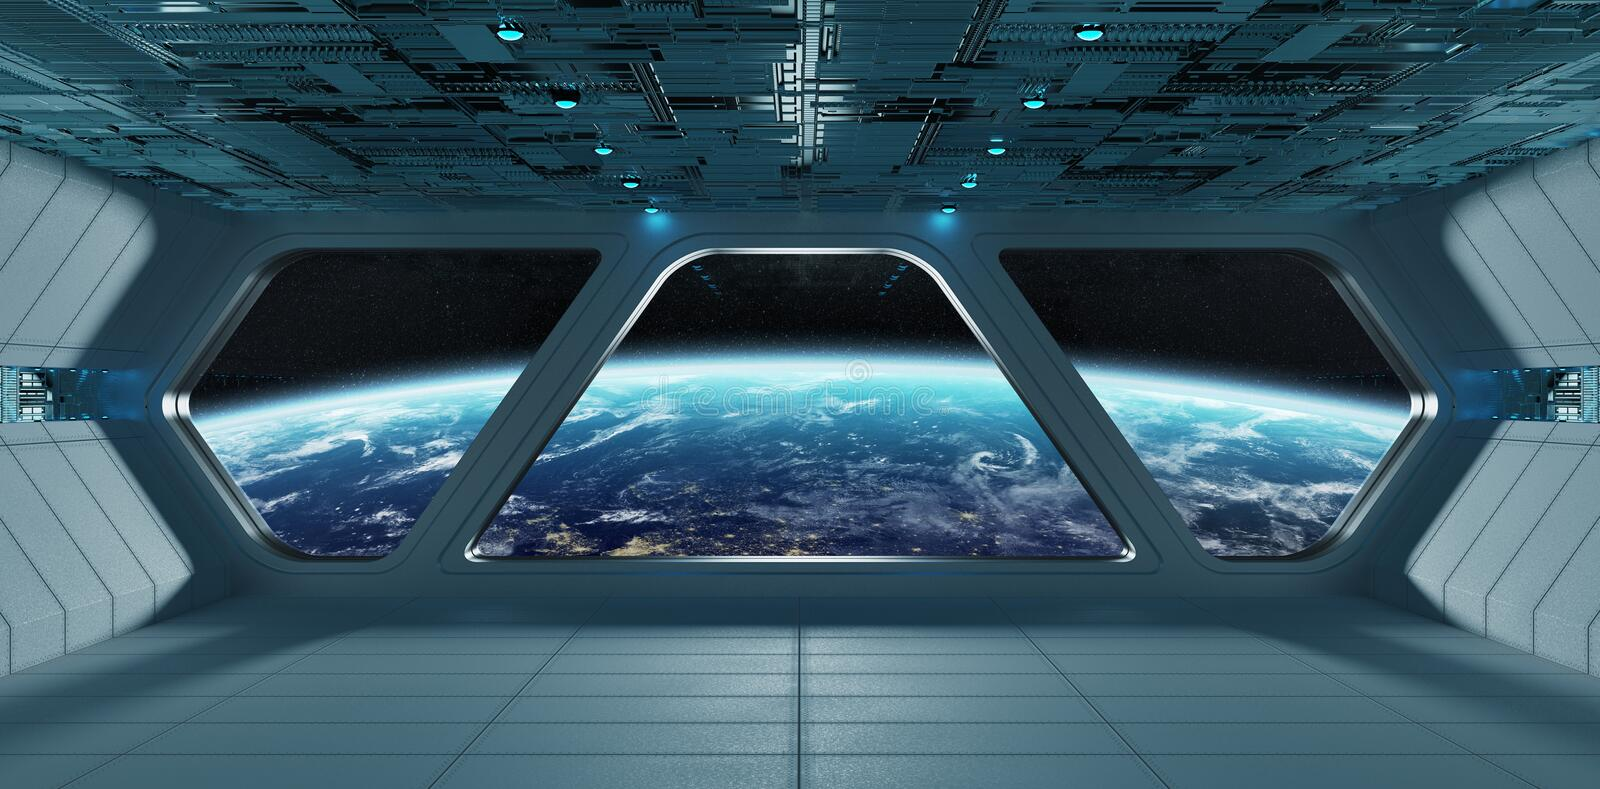 Spaceship futuristic grey blue interior with view on planet Earth royalty free illustration